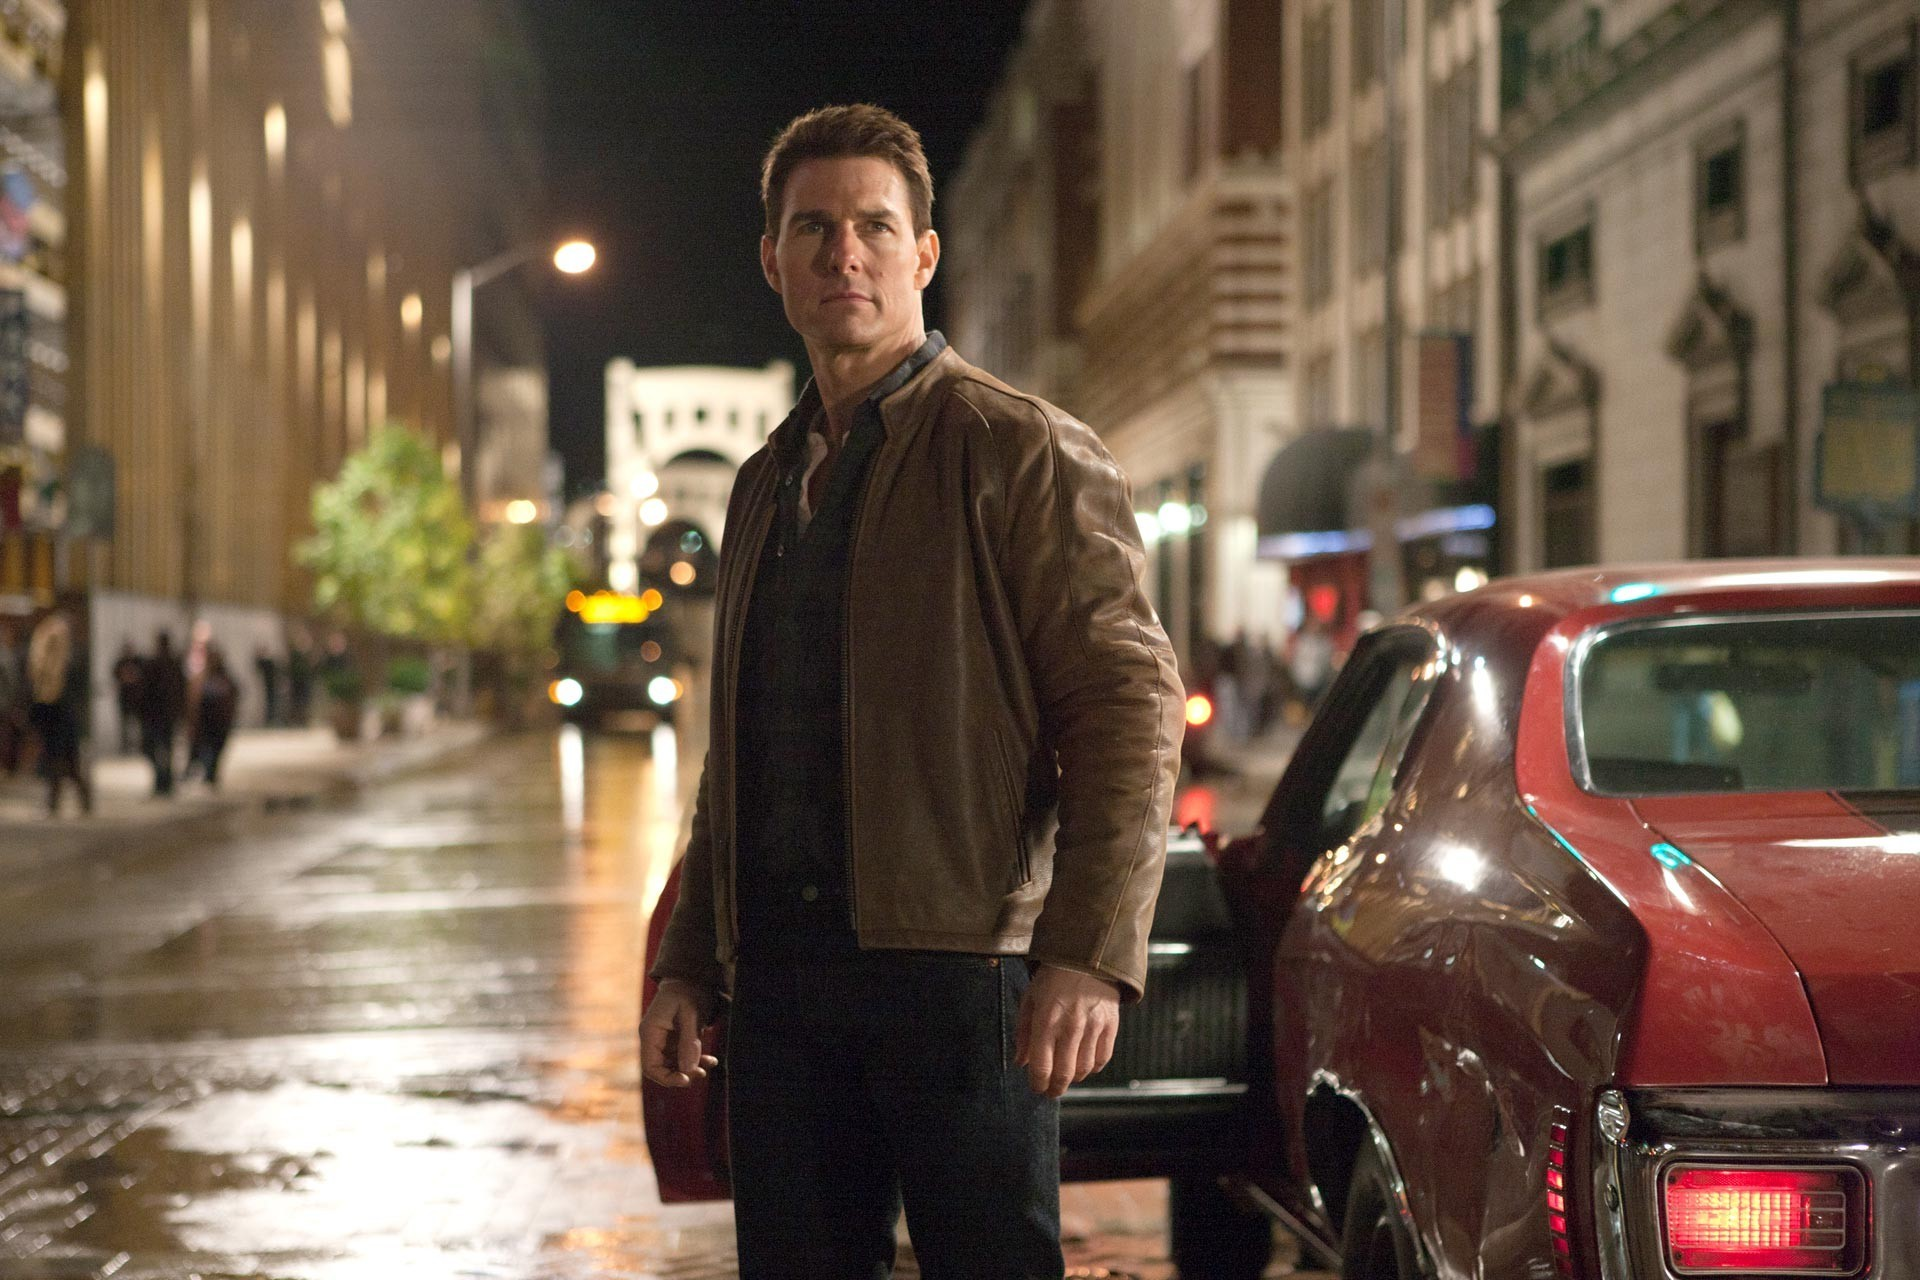 Tom Cruise in Movie Jack Reacher HD Wallpapers 1920x1280